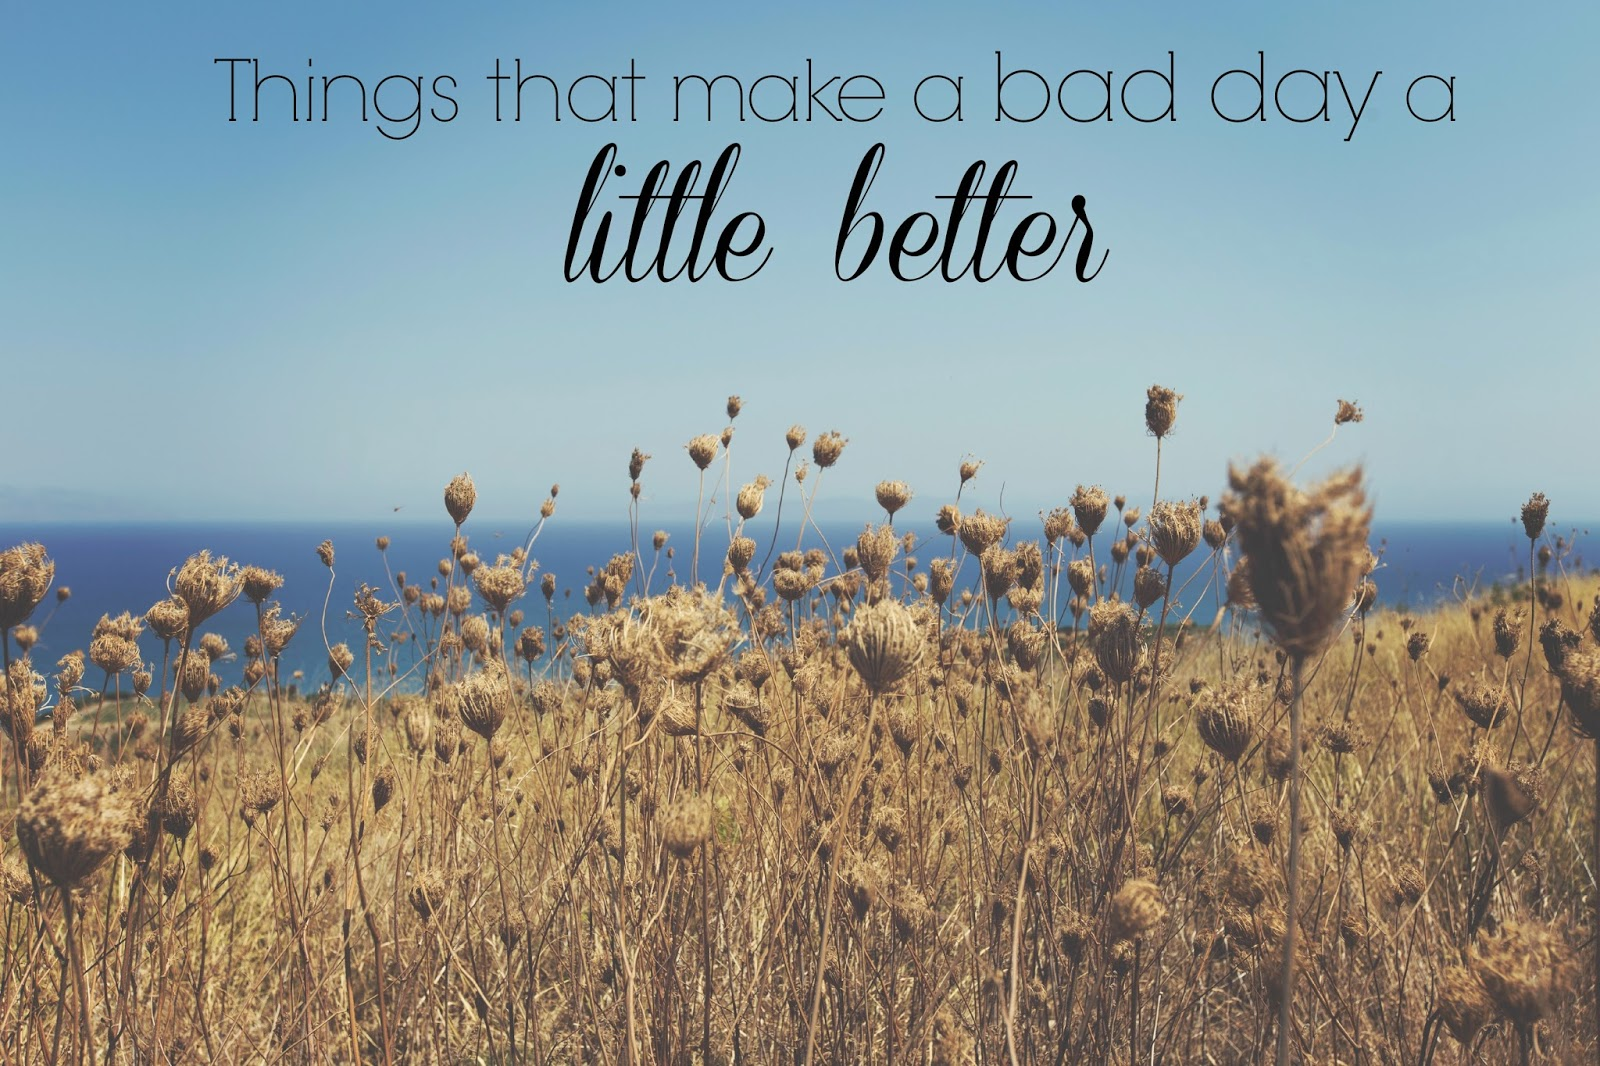 Make a Bad Day Good